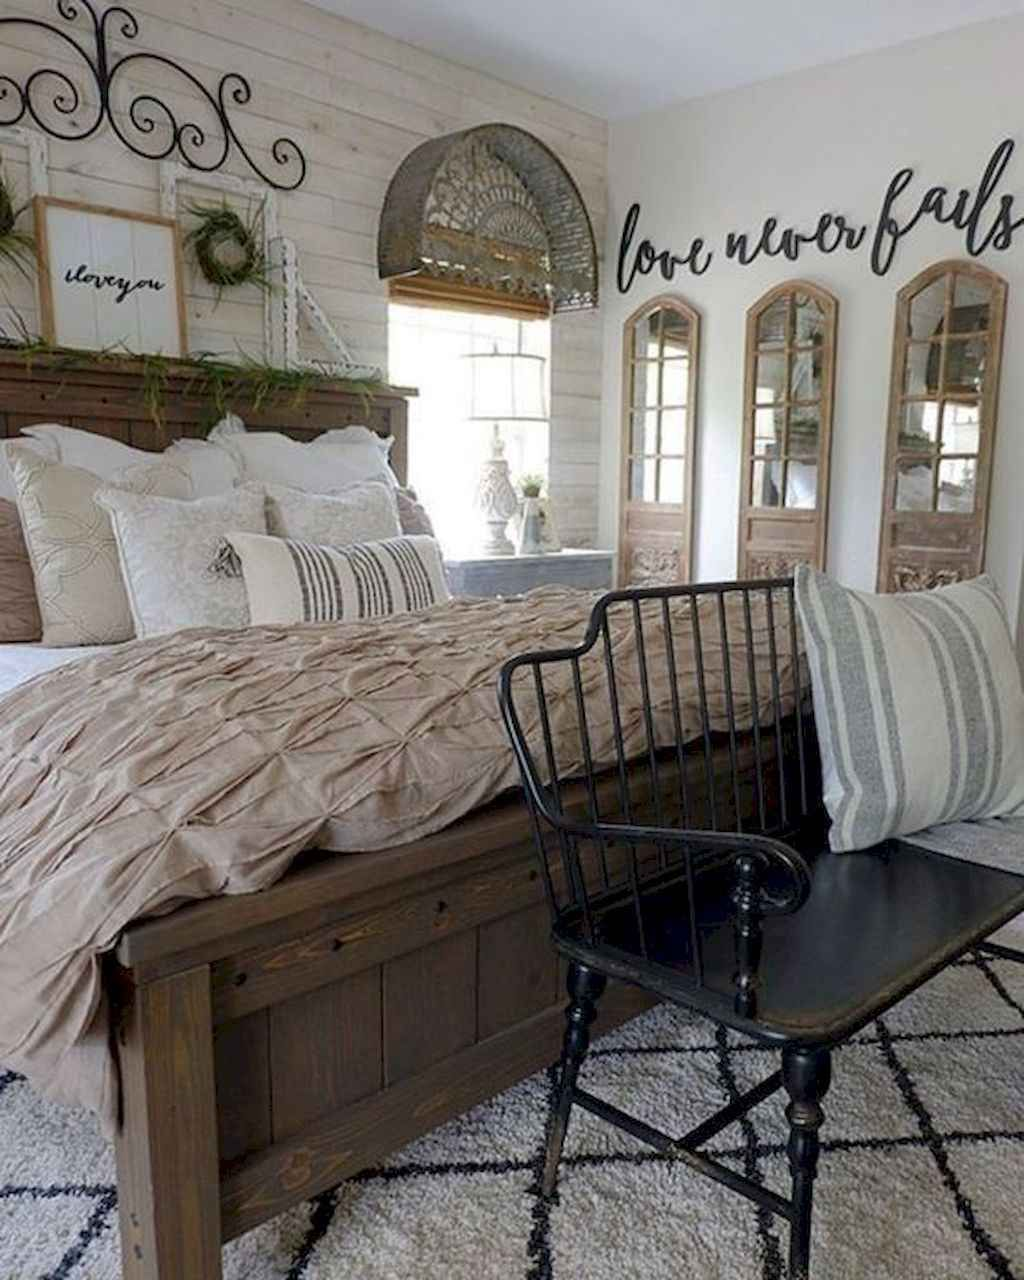 Simply Farmhouse Master Bedroom Design Ideas You Re Dreaming Of 28 In 2020 Rustic Master Bedroom Farmhouse Bedroom Decor Home Decor Bedroom